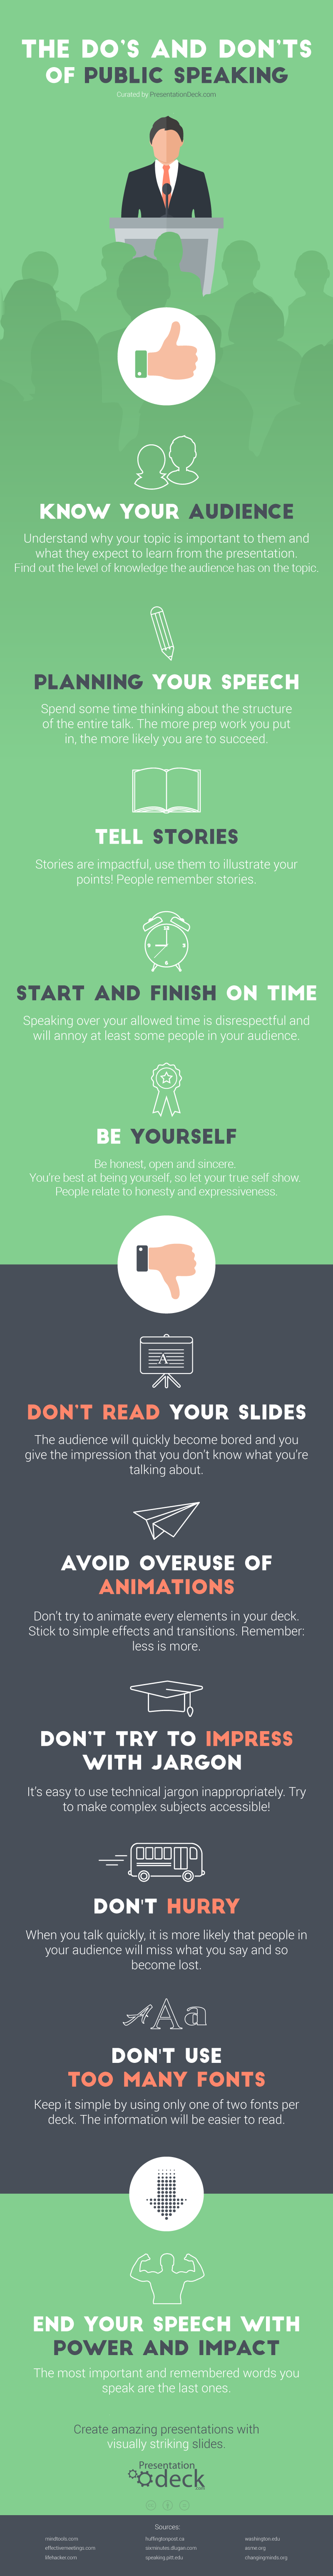 The Art of Public Speaking: Do's and Don'ts - Infographic